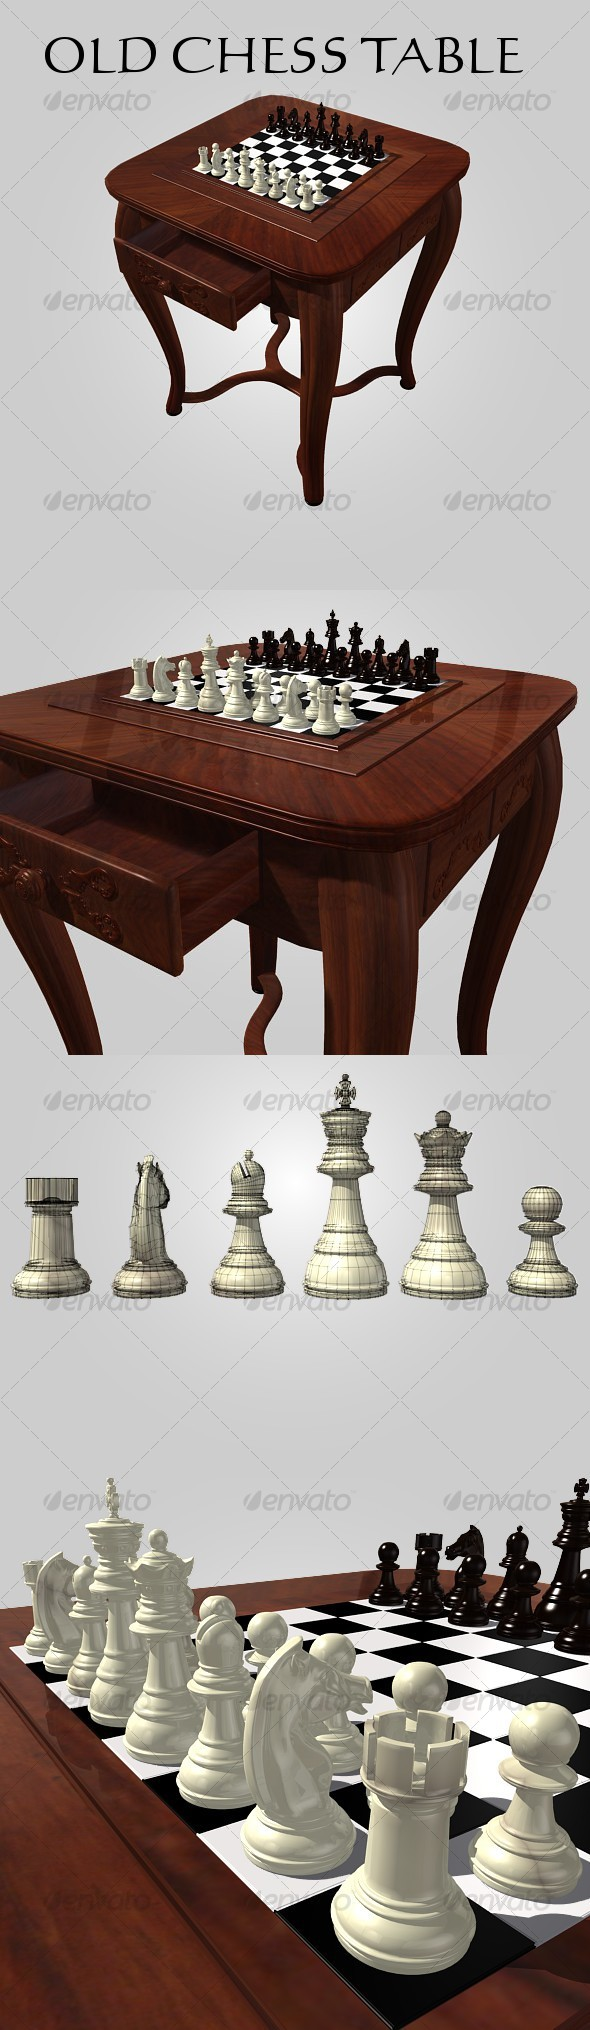 3DOcean Old Chess Table 117908